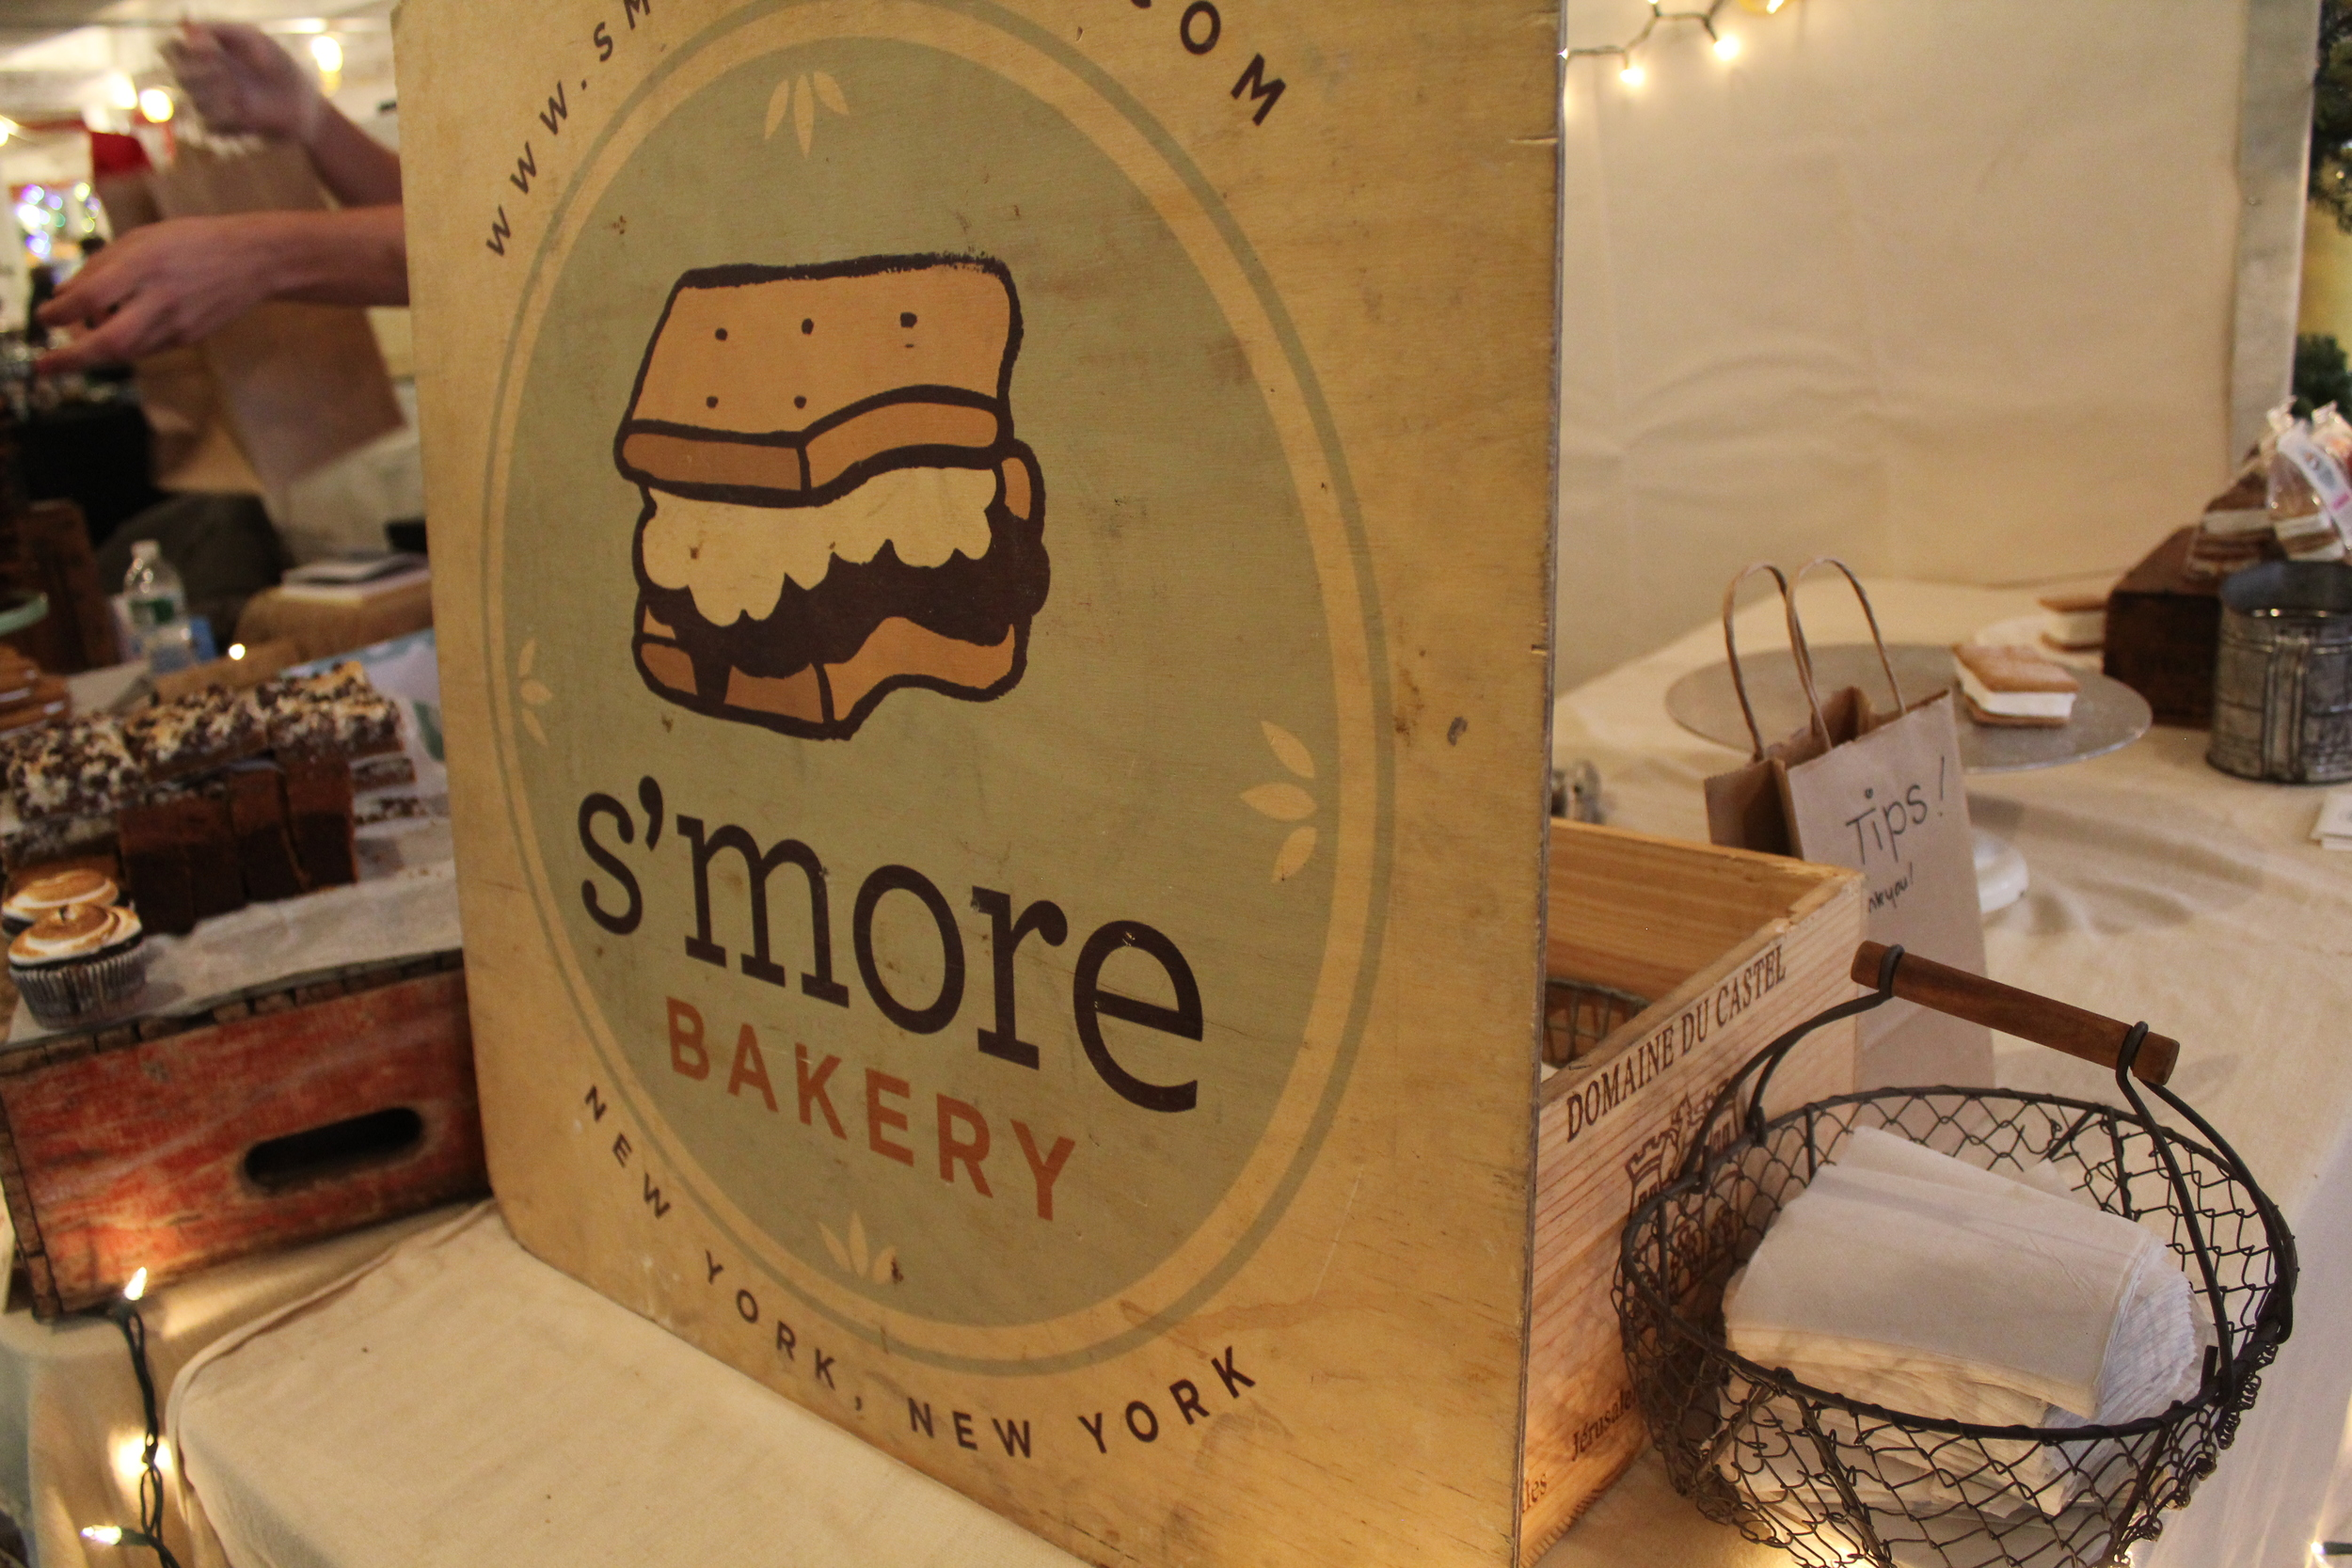 S'more Bakery